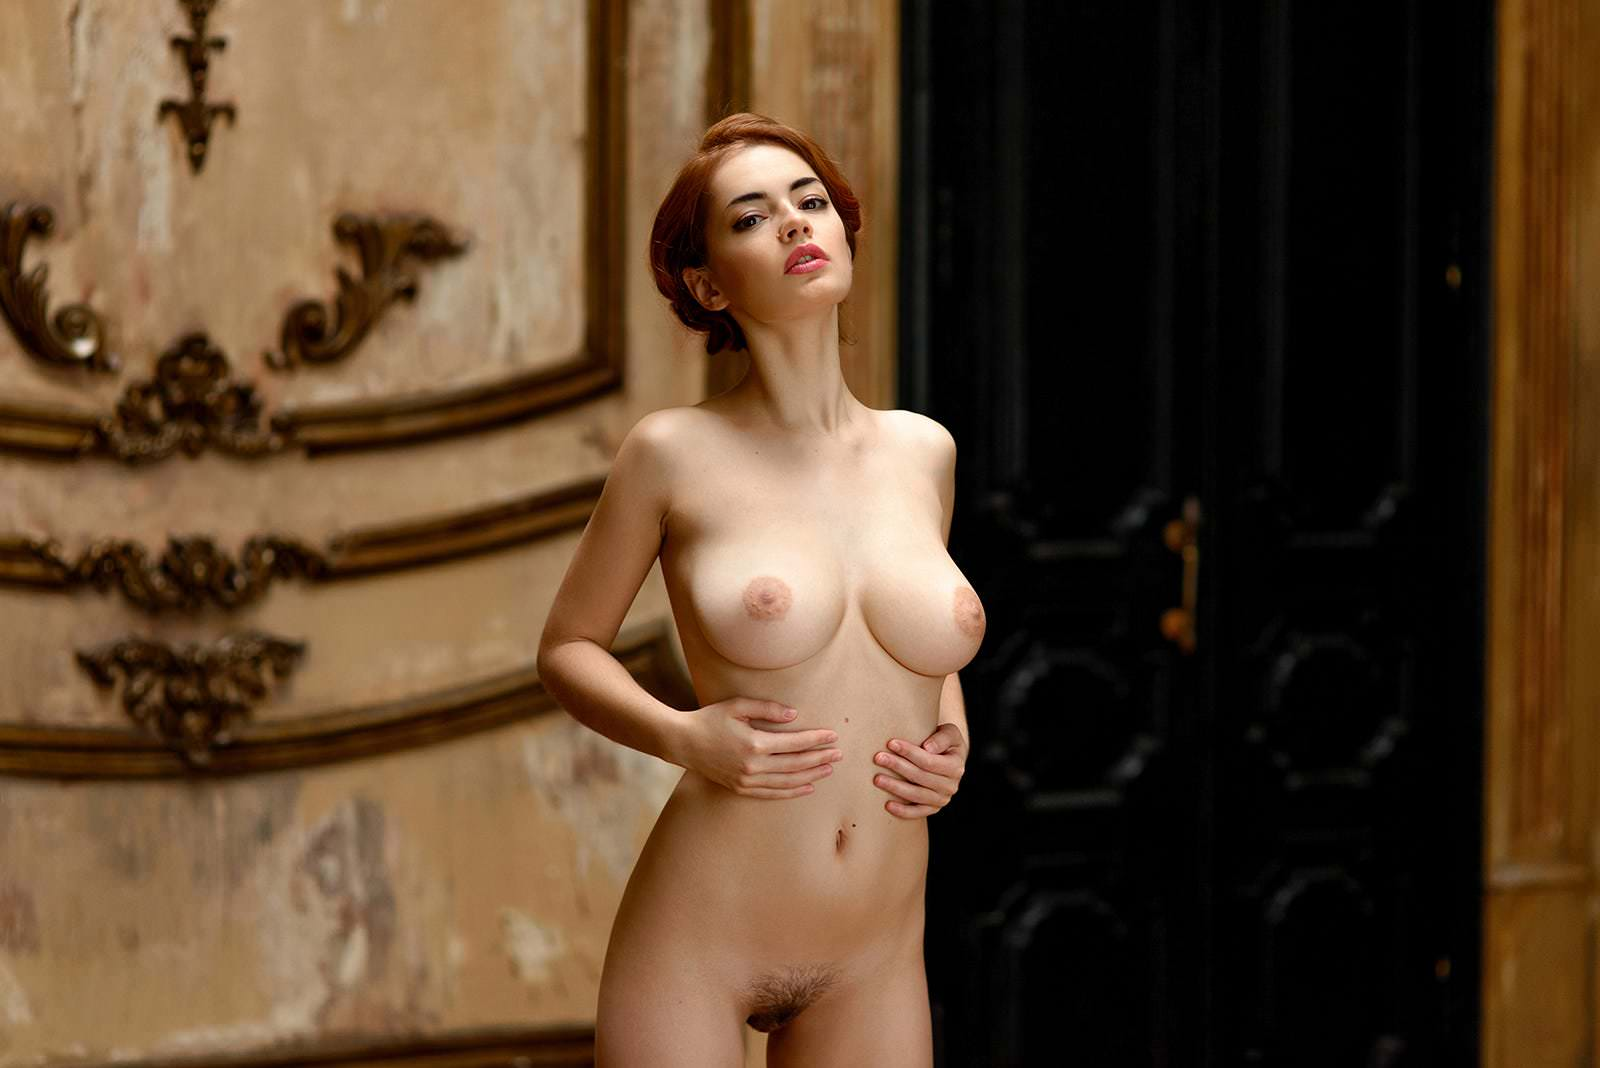 Lidia savoderova boobs nude